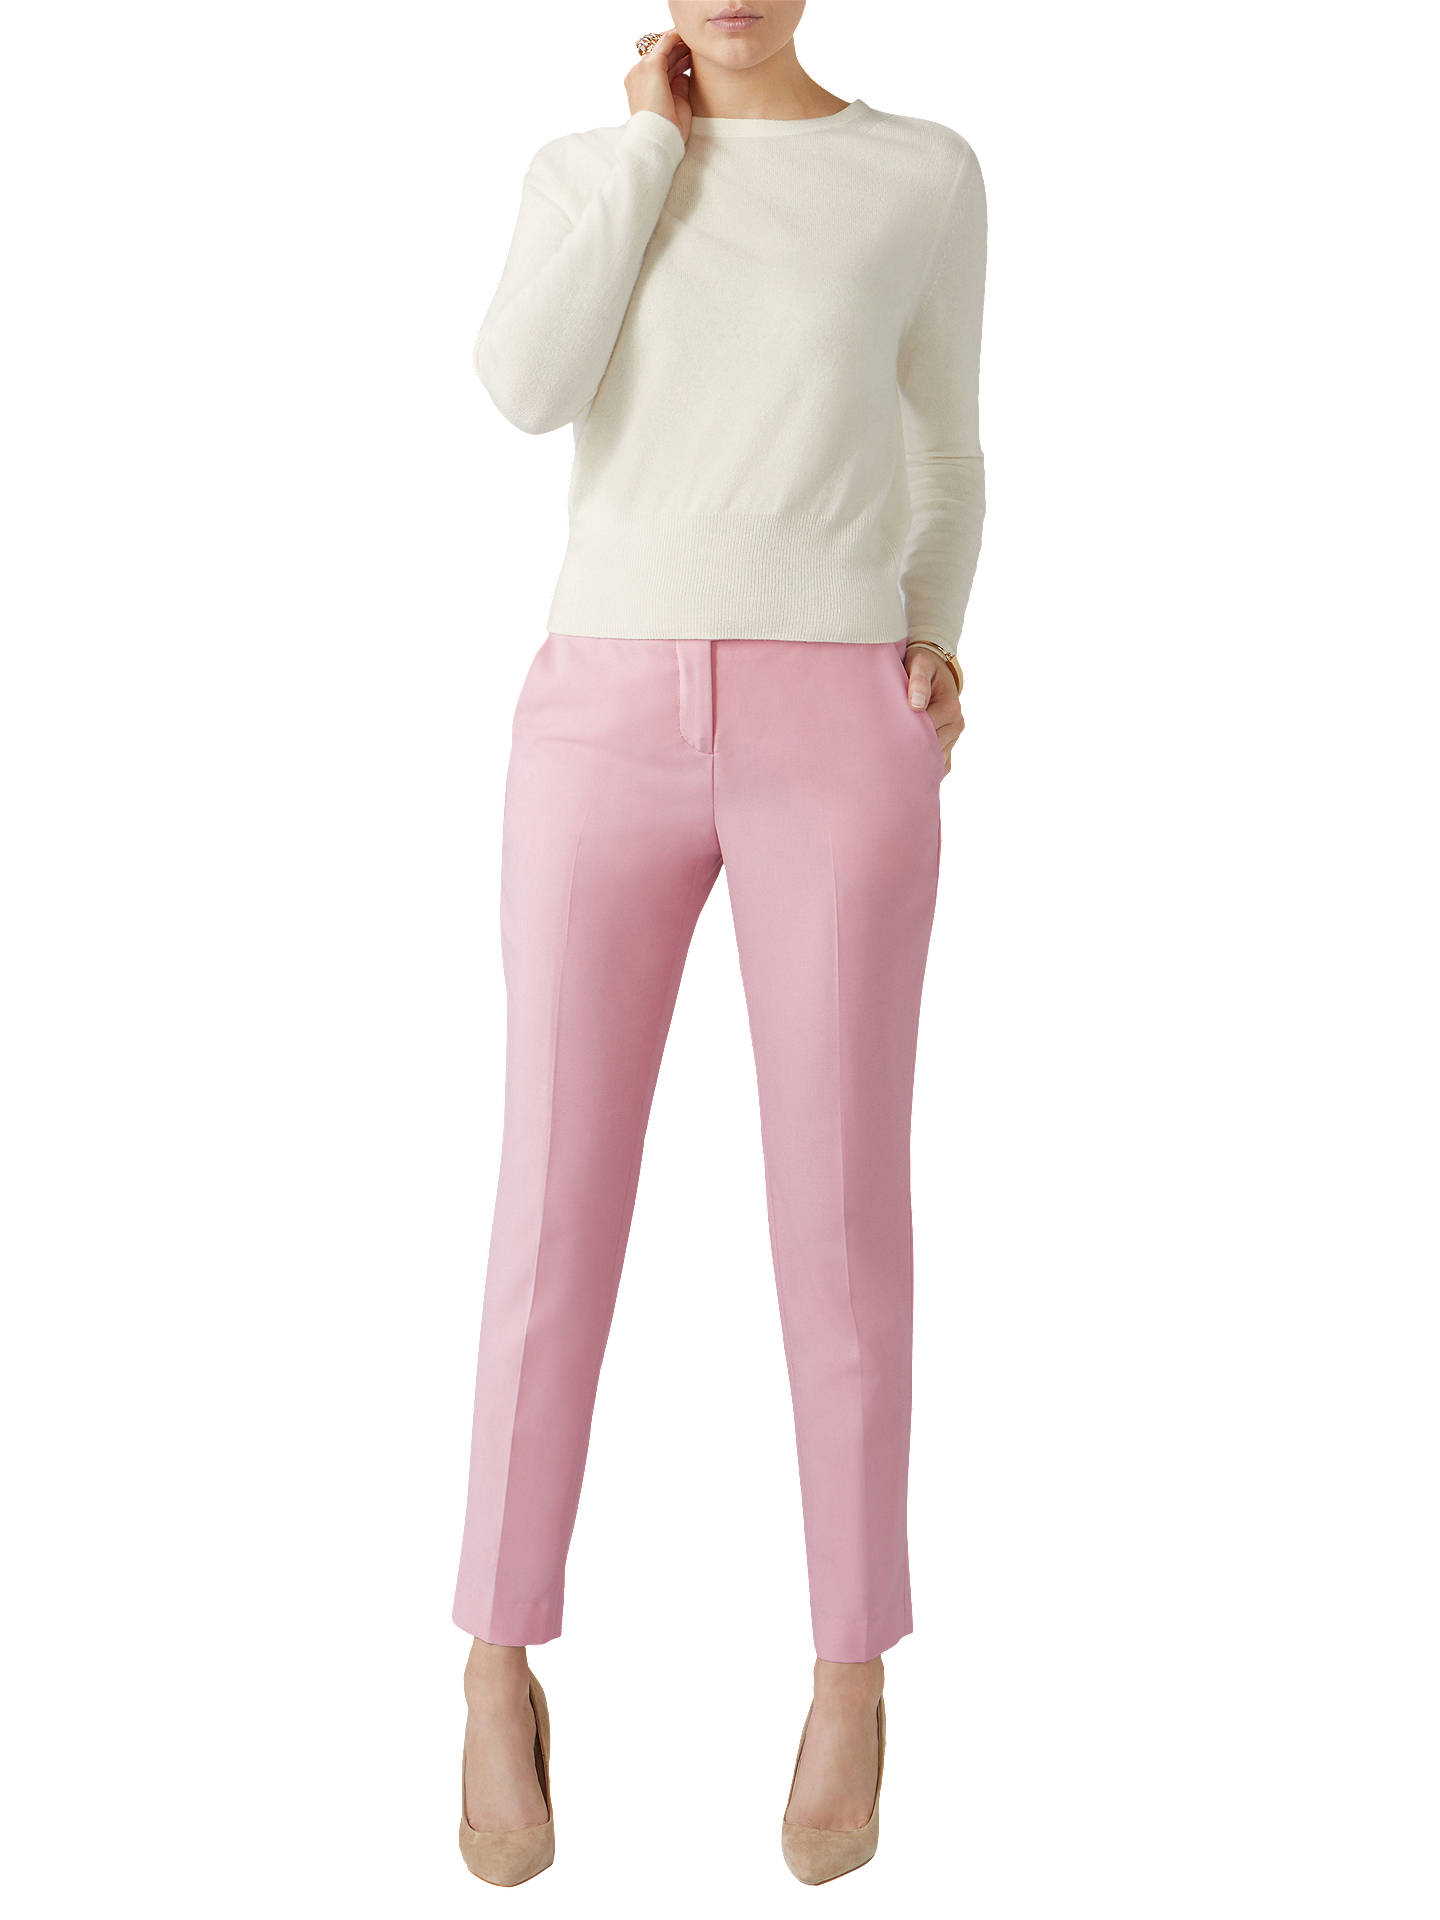 BuyPure Collection Tailored Ankle Length Trousers, Pink, 20 Online at johnlewis.com